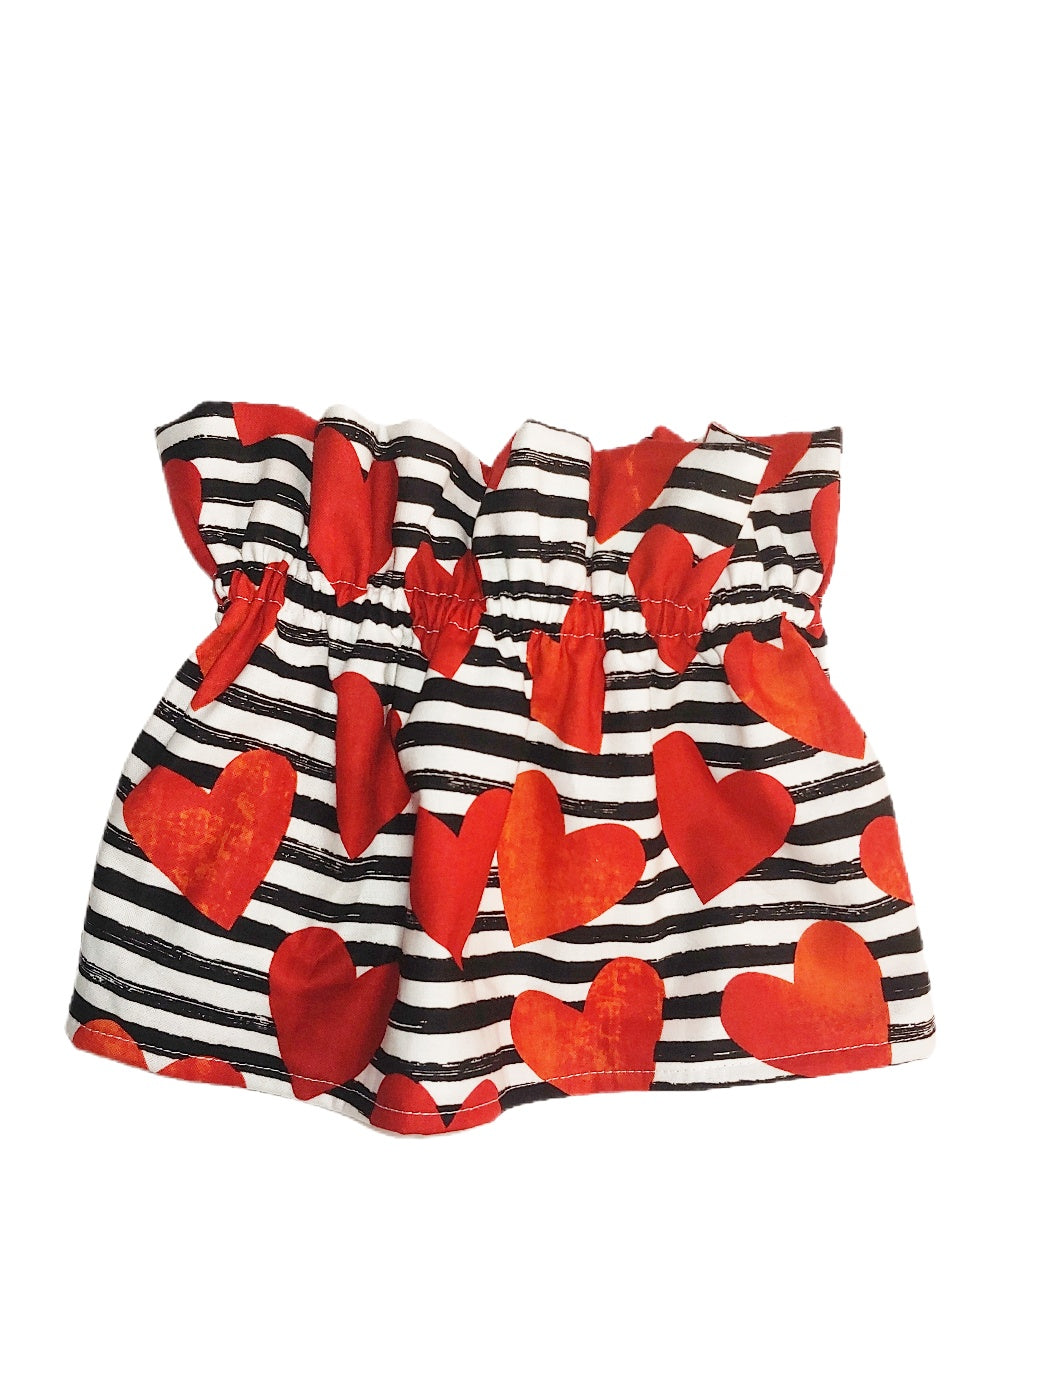 Red Hearts & Stripes Paperbag Skirt (READY TO SHIP)